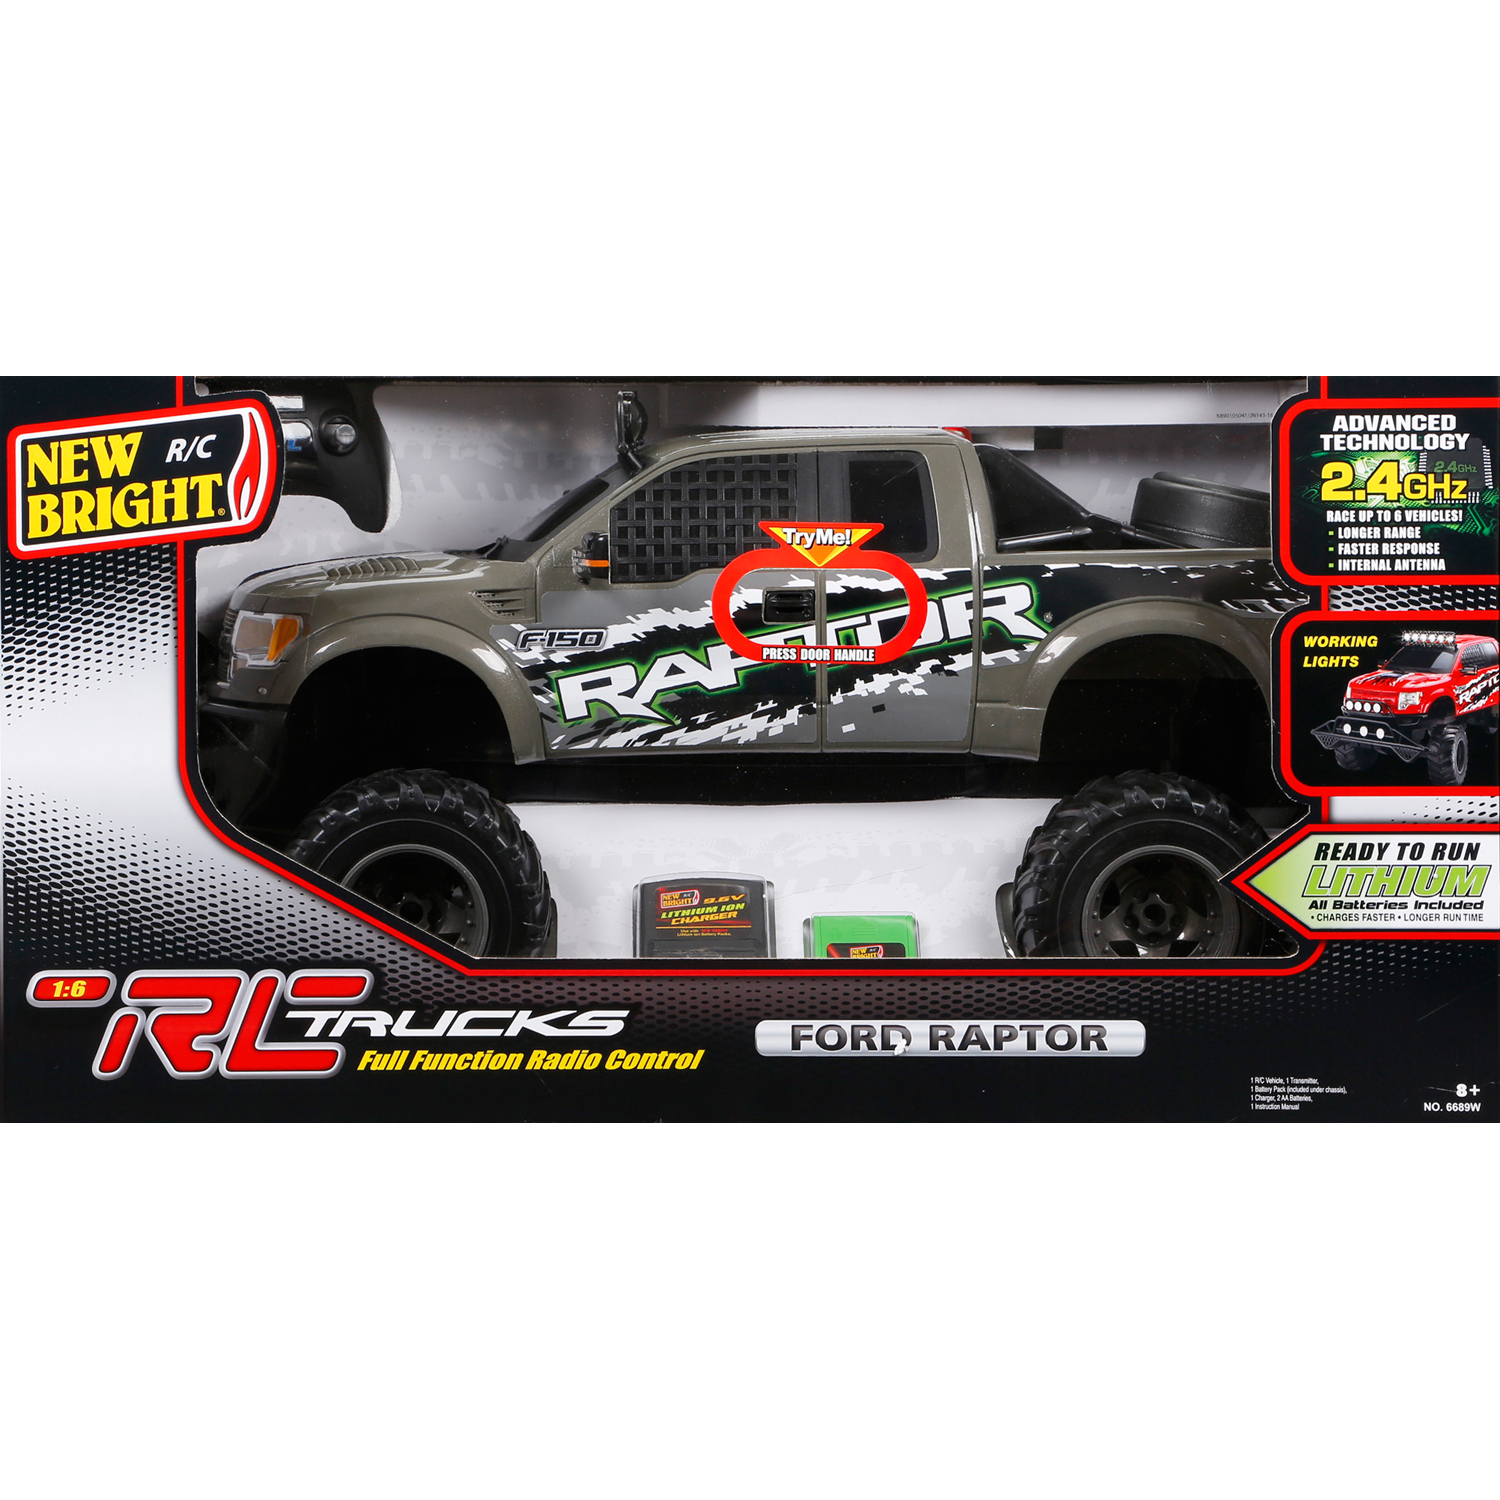 new bright rc 1 6 scale ford raptor truck gray ebay. Black Bedroom Furniture Sets. Home Design Ideas